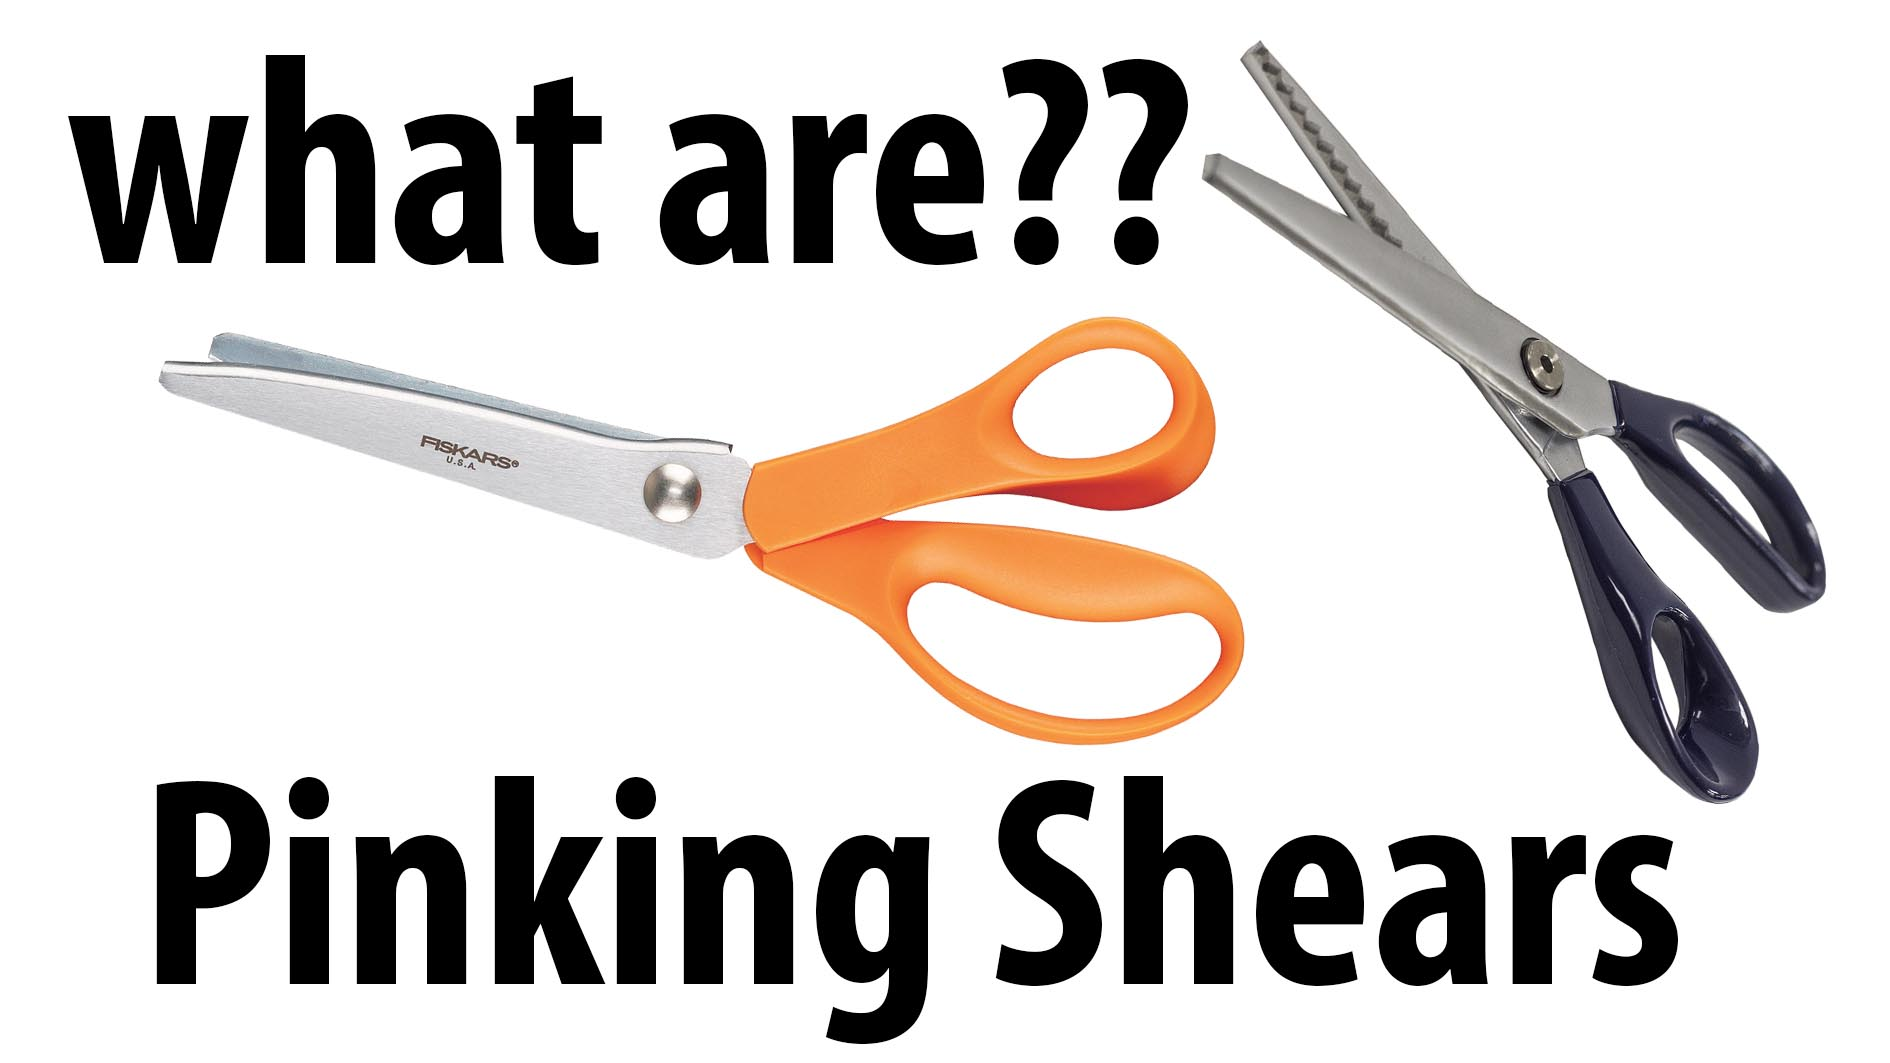 Pinking Shears what are they?